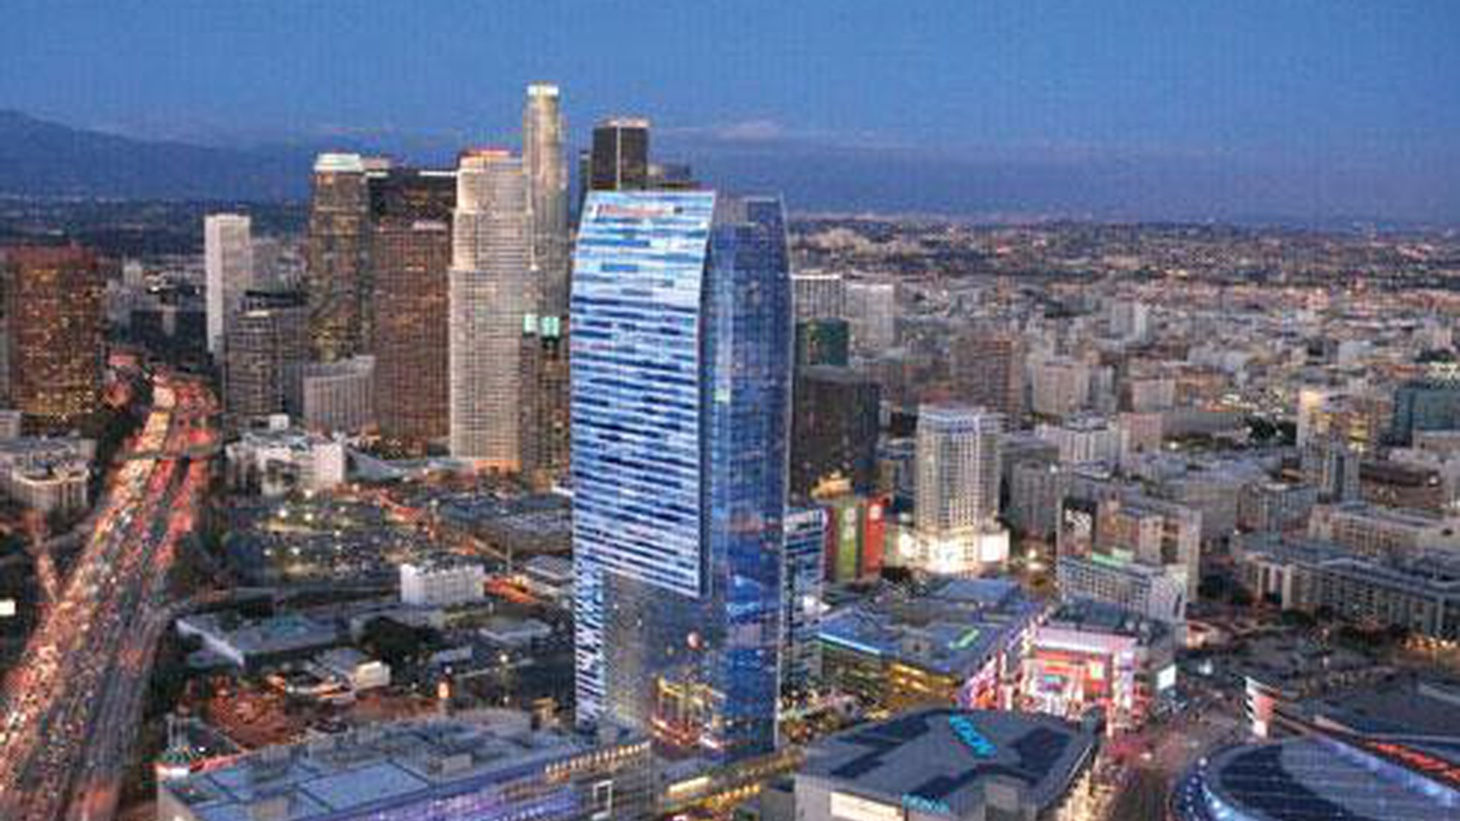 Despite cutbacks in police, fire and other public services, the Mayor and City Council are giving $640 million in tax revenue to hotel developers in downtown LA.